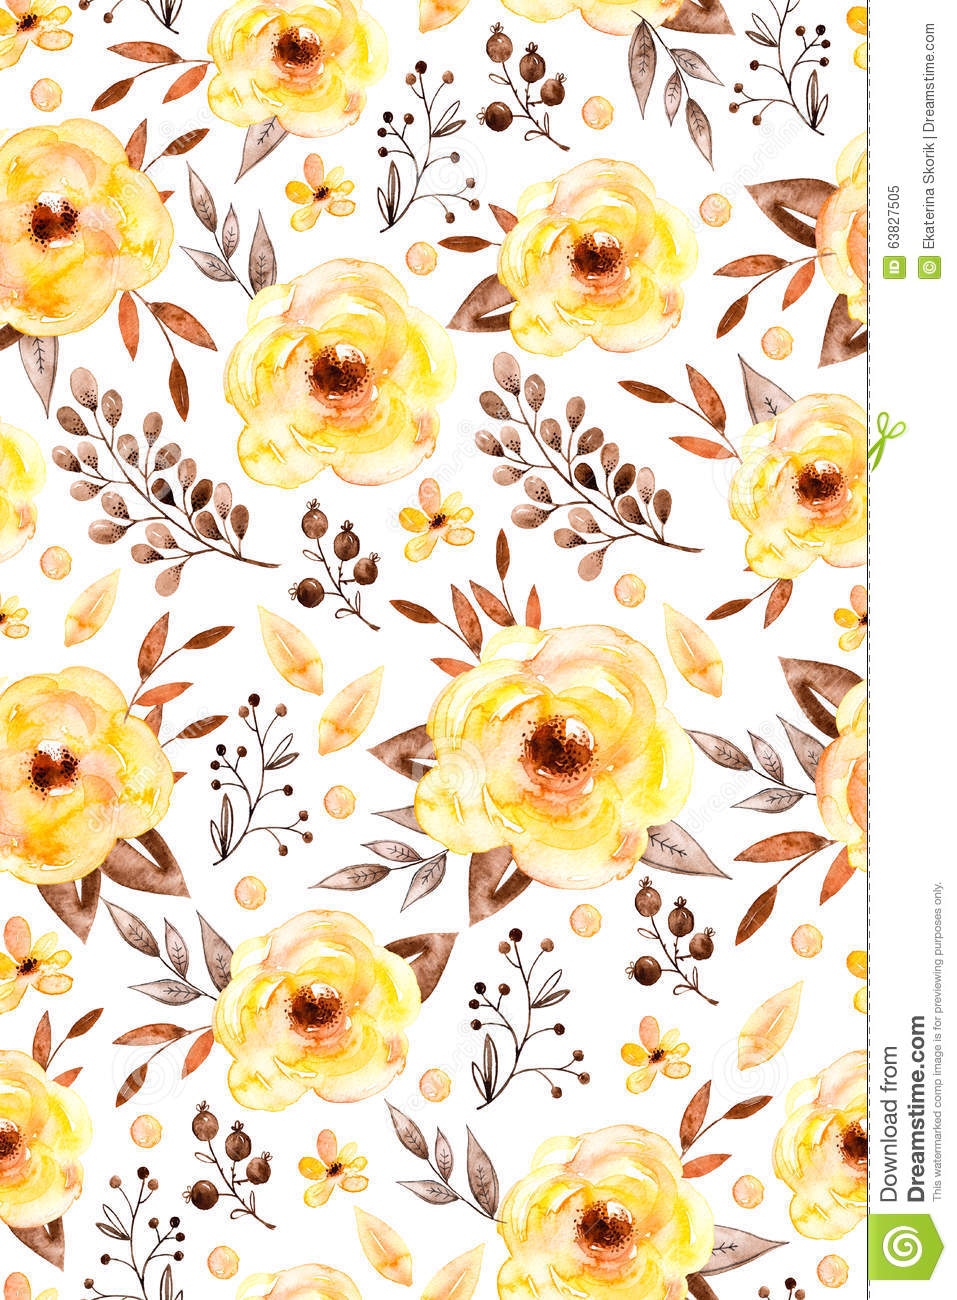 Watercolor Floral Seamless Pattern With Yellow Flowers And Leafs